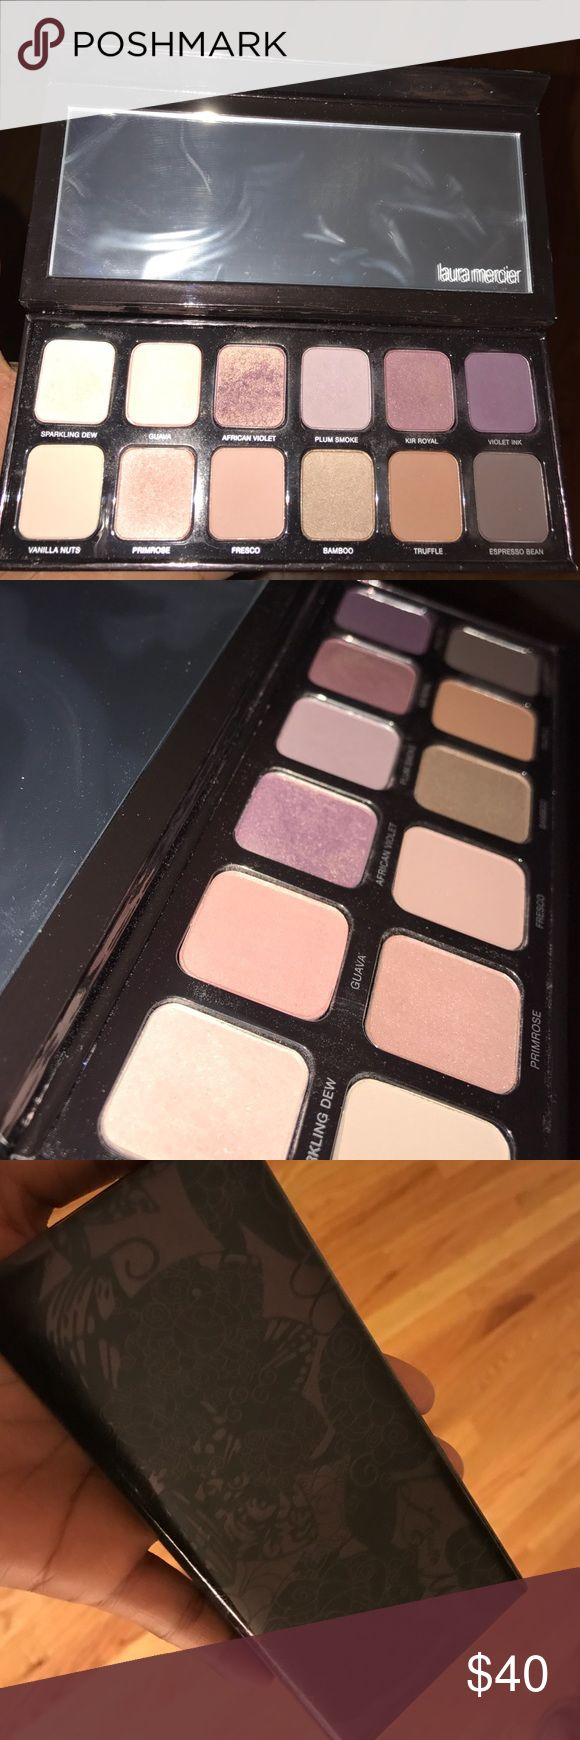 Laura Mercier eyeshadow pallet Highly pigmented range featuring a dozen eye shadows that range from cool to warm shades. Only used to swatch some colors weren't even touched. Plastic on mirror is still on! Sephora Makeup Eyeshadow